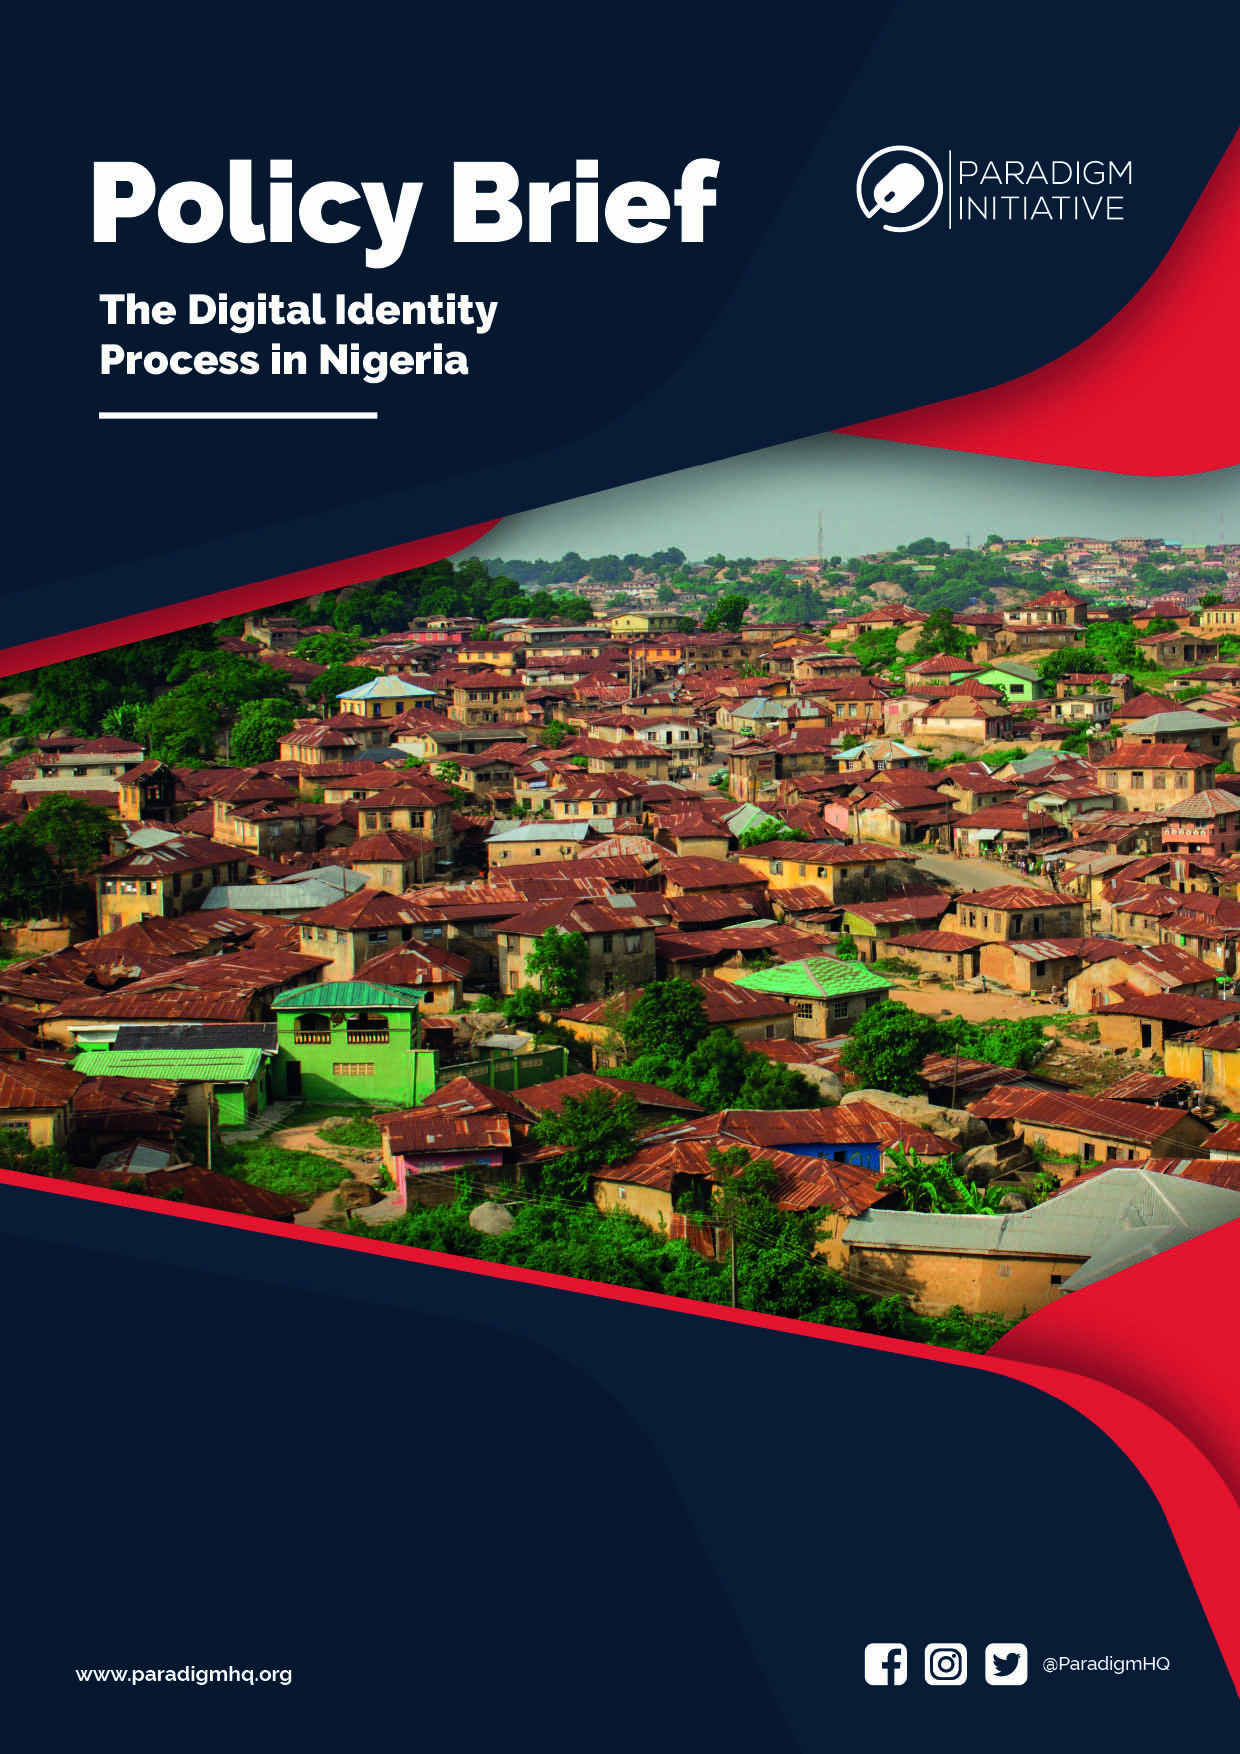 Policy Brief: The Digital Identity Process in Nigeria